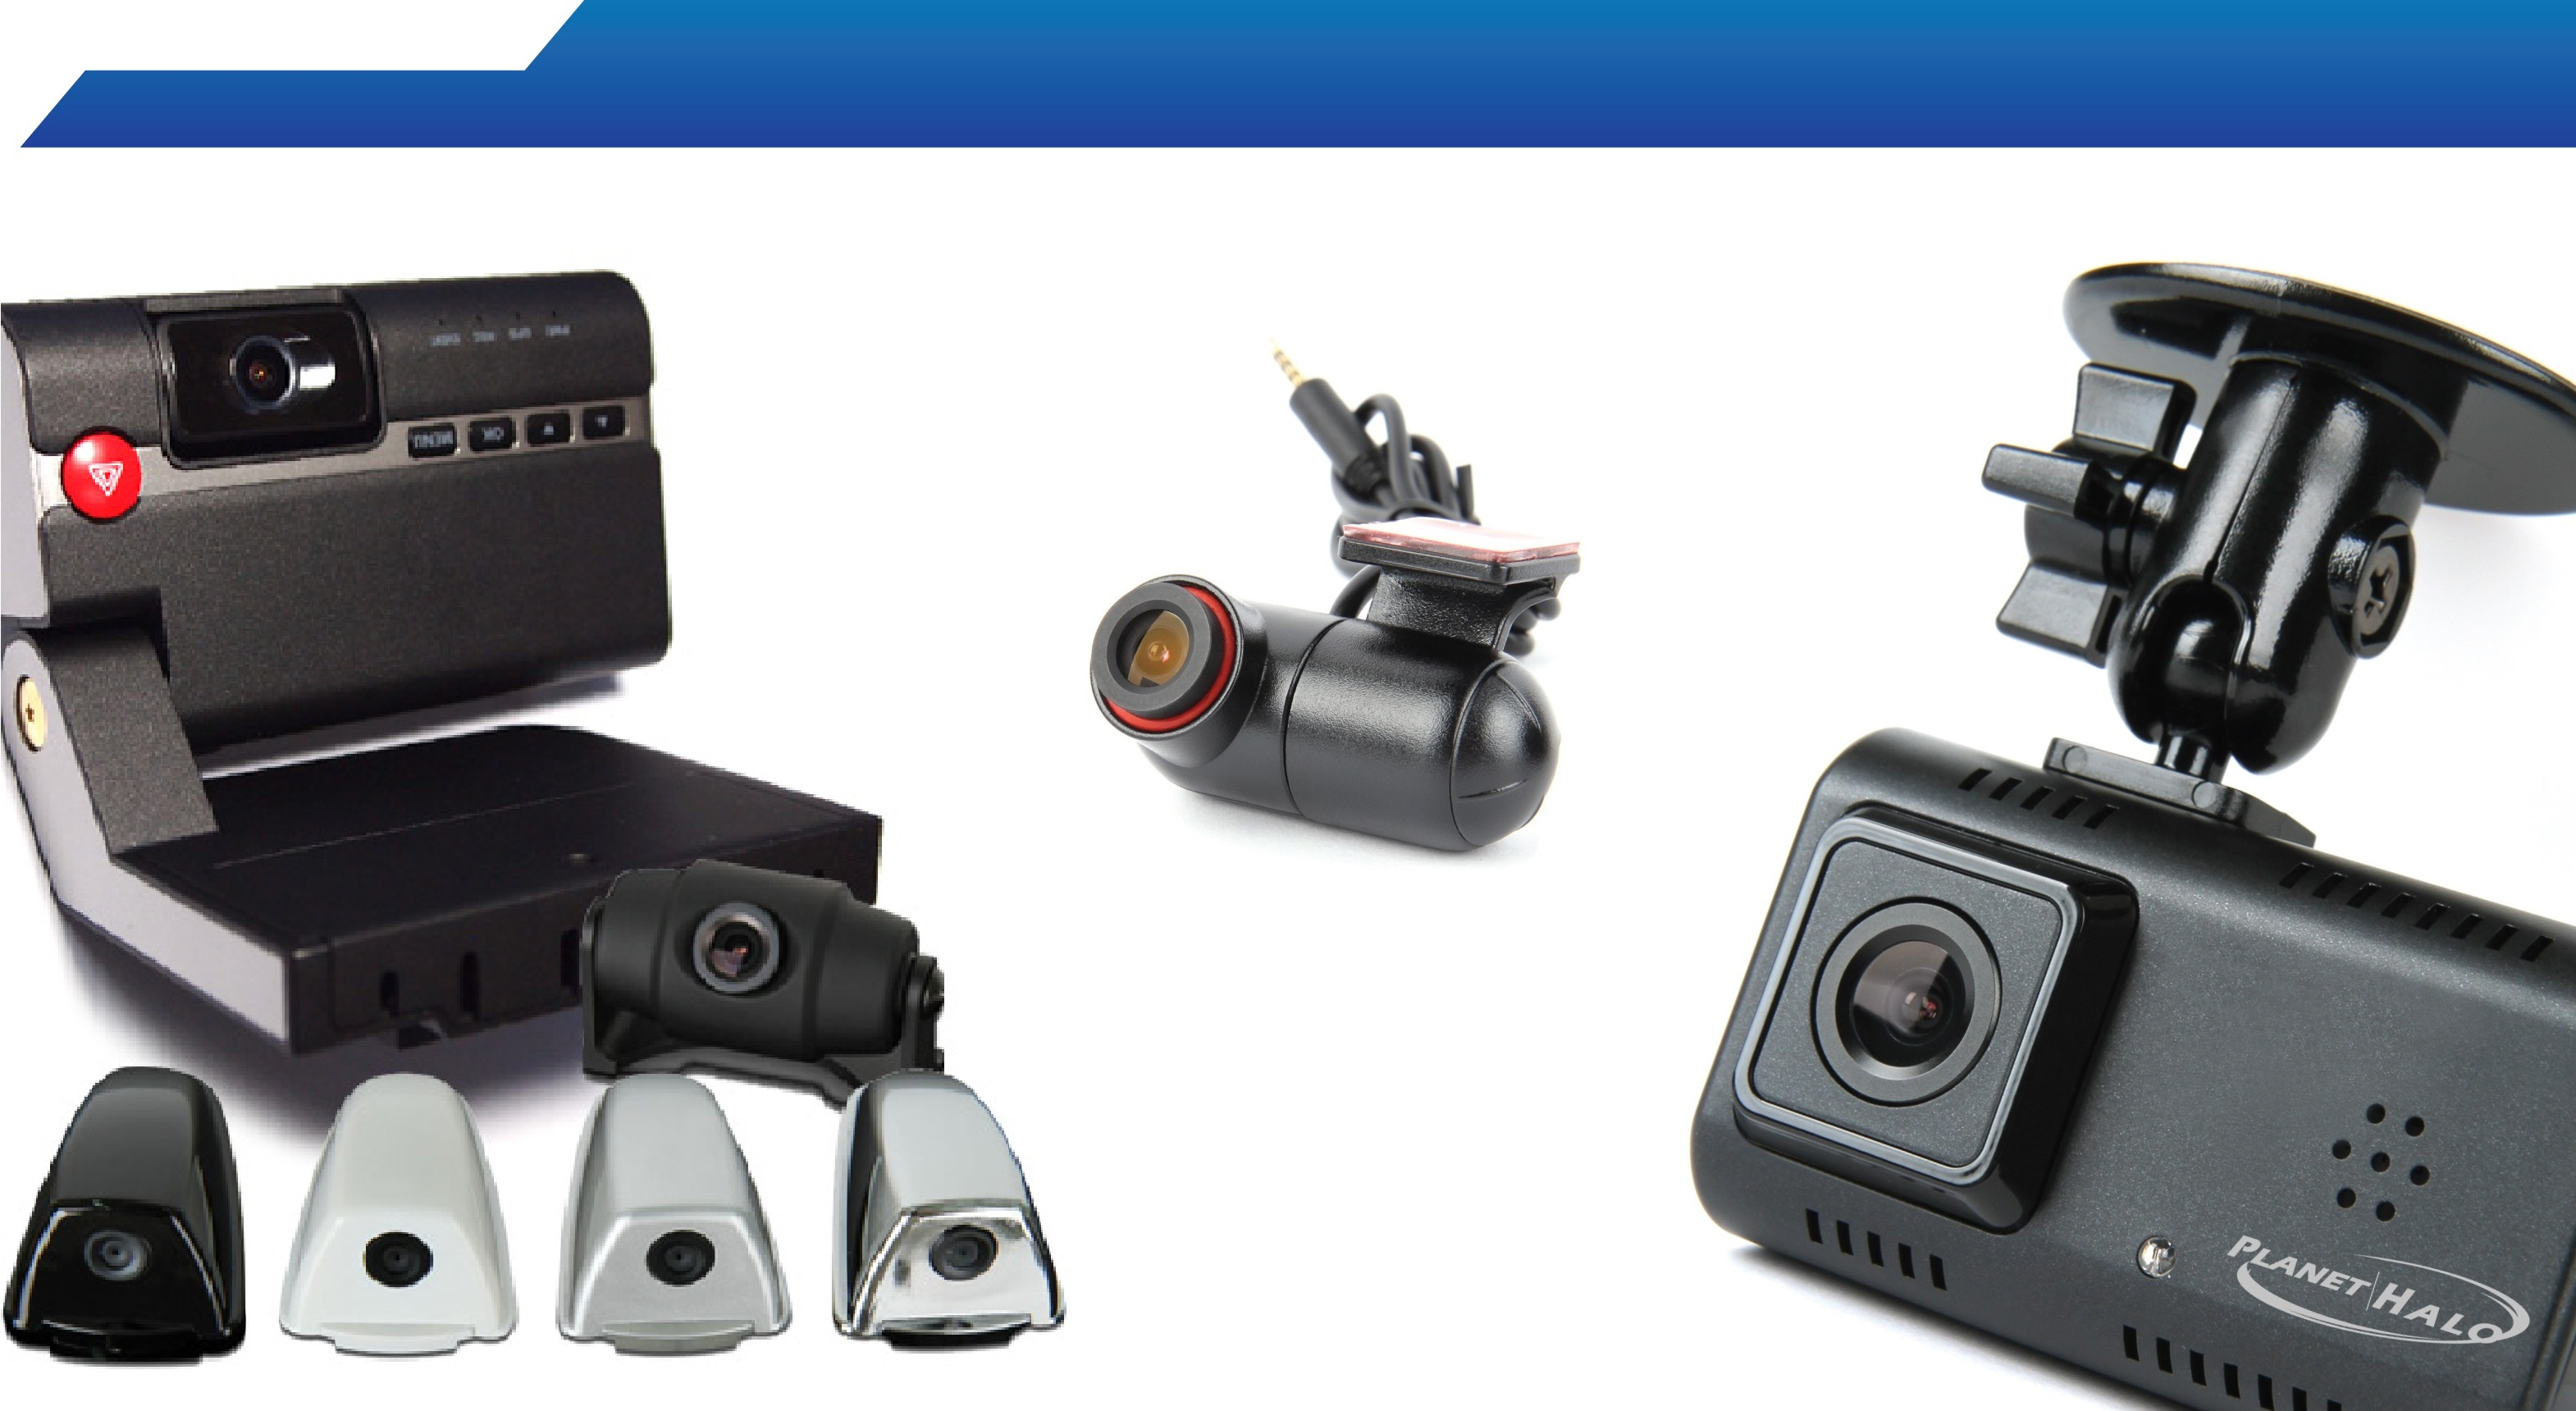 dash-cams-product-line